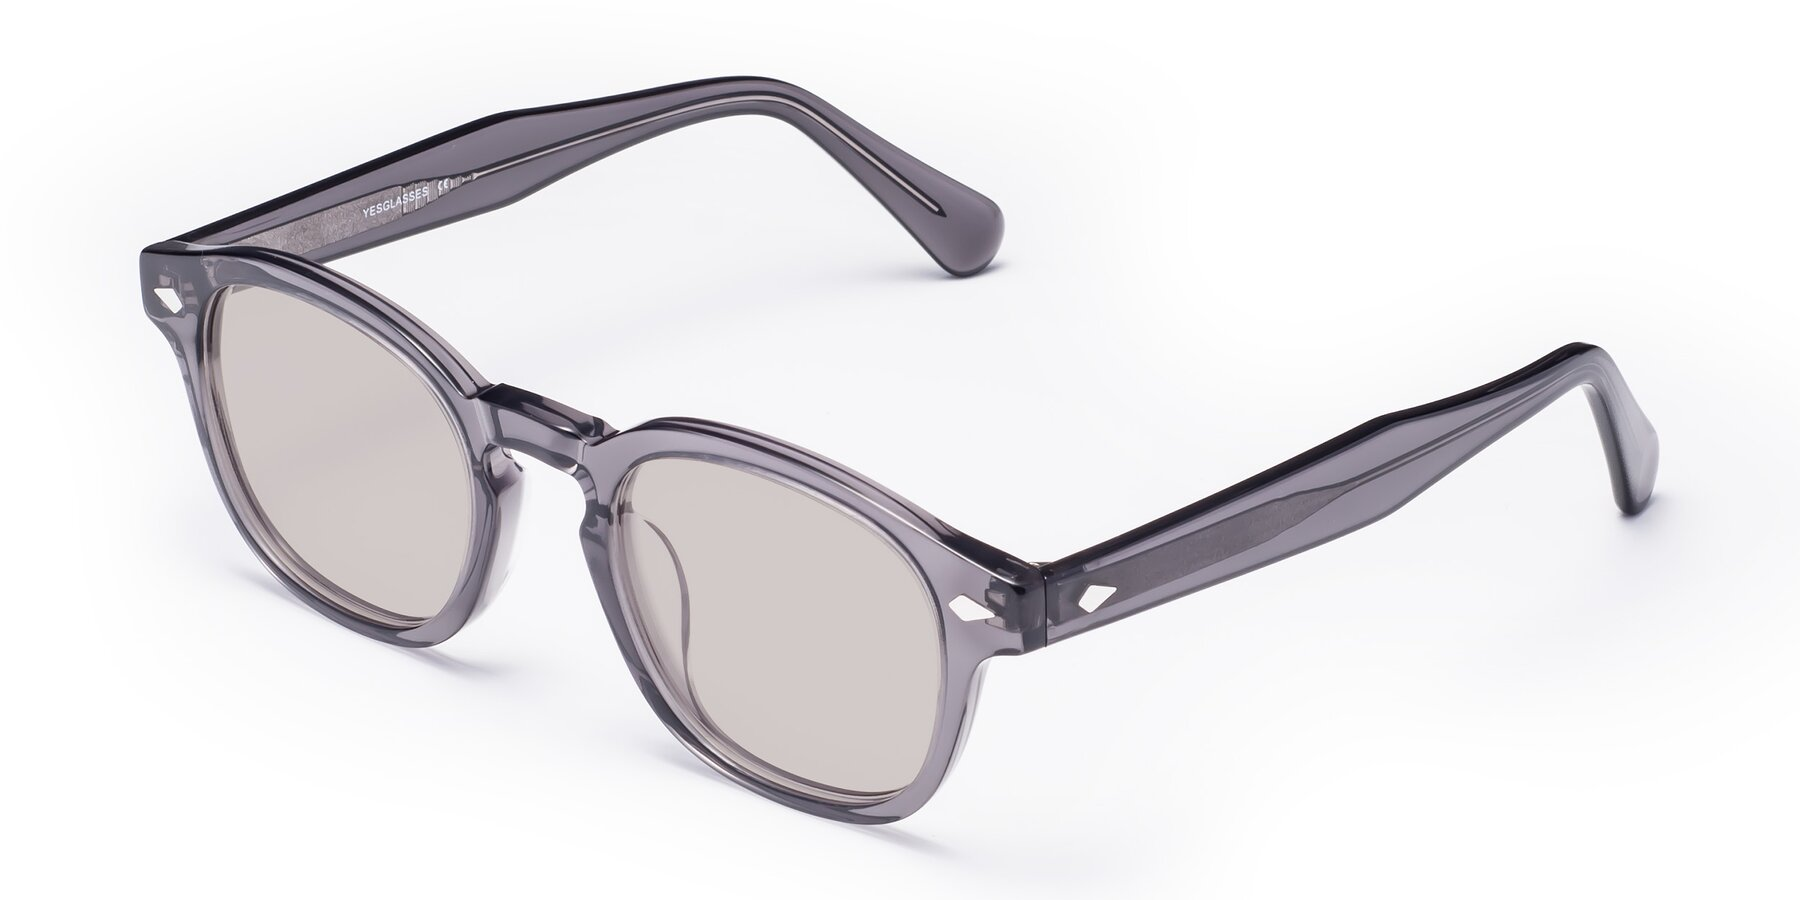 Angle of WALL-E in Translucent Gray with Light Brown Tinted Lenses